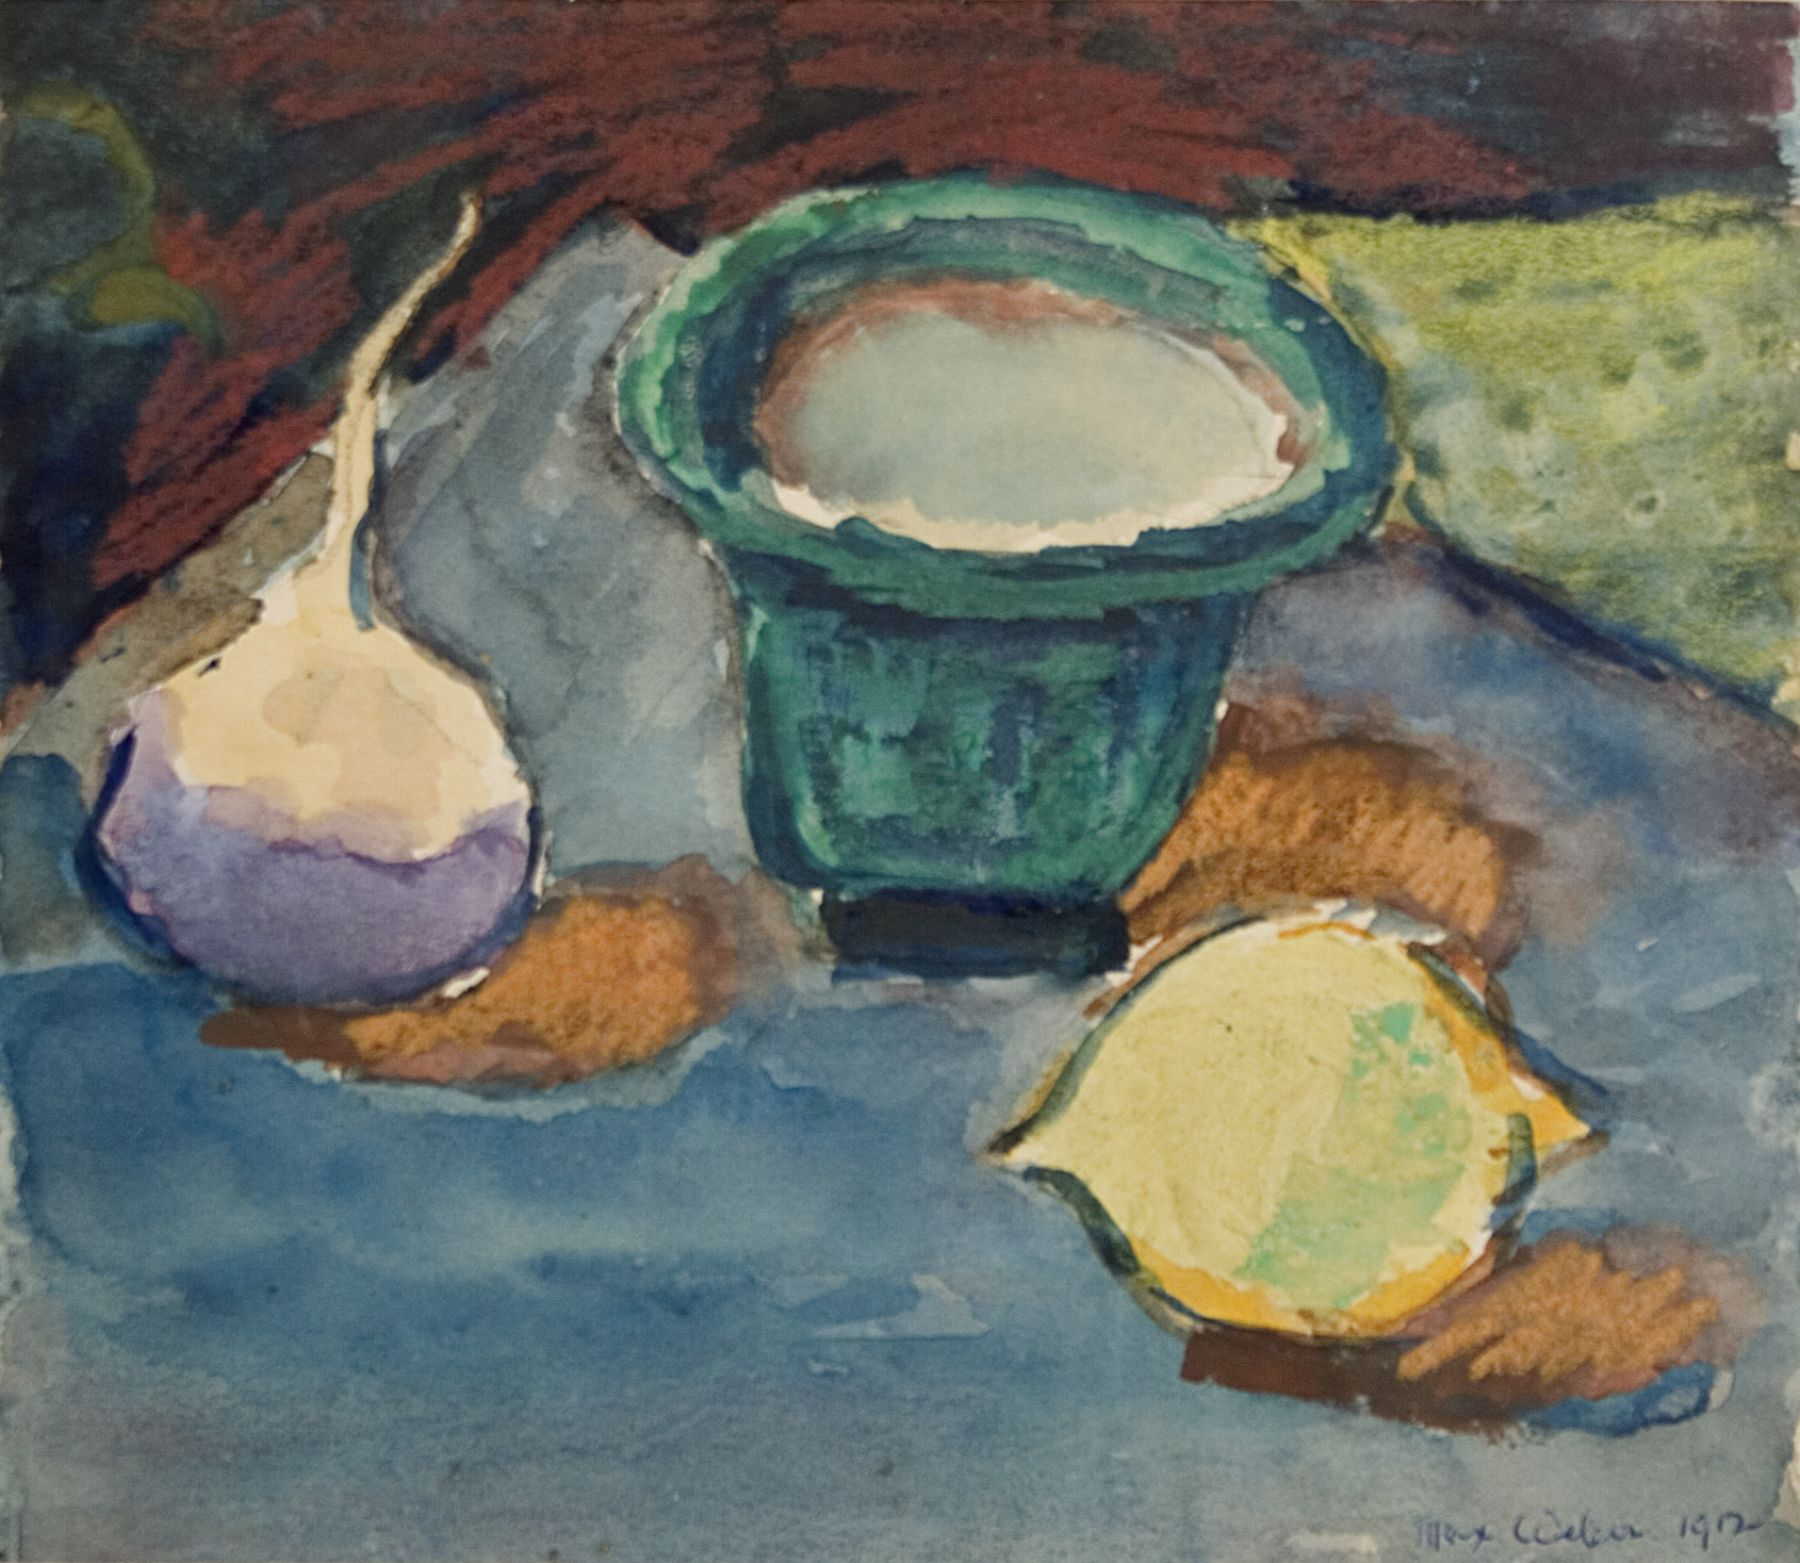 Max Weber, Still Life, 1912, watercolor and gouache on paper, 7 3/4 x 9 inches